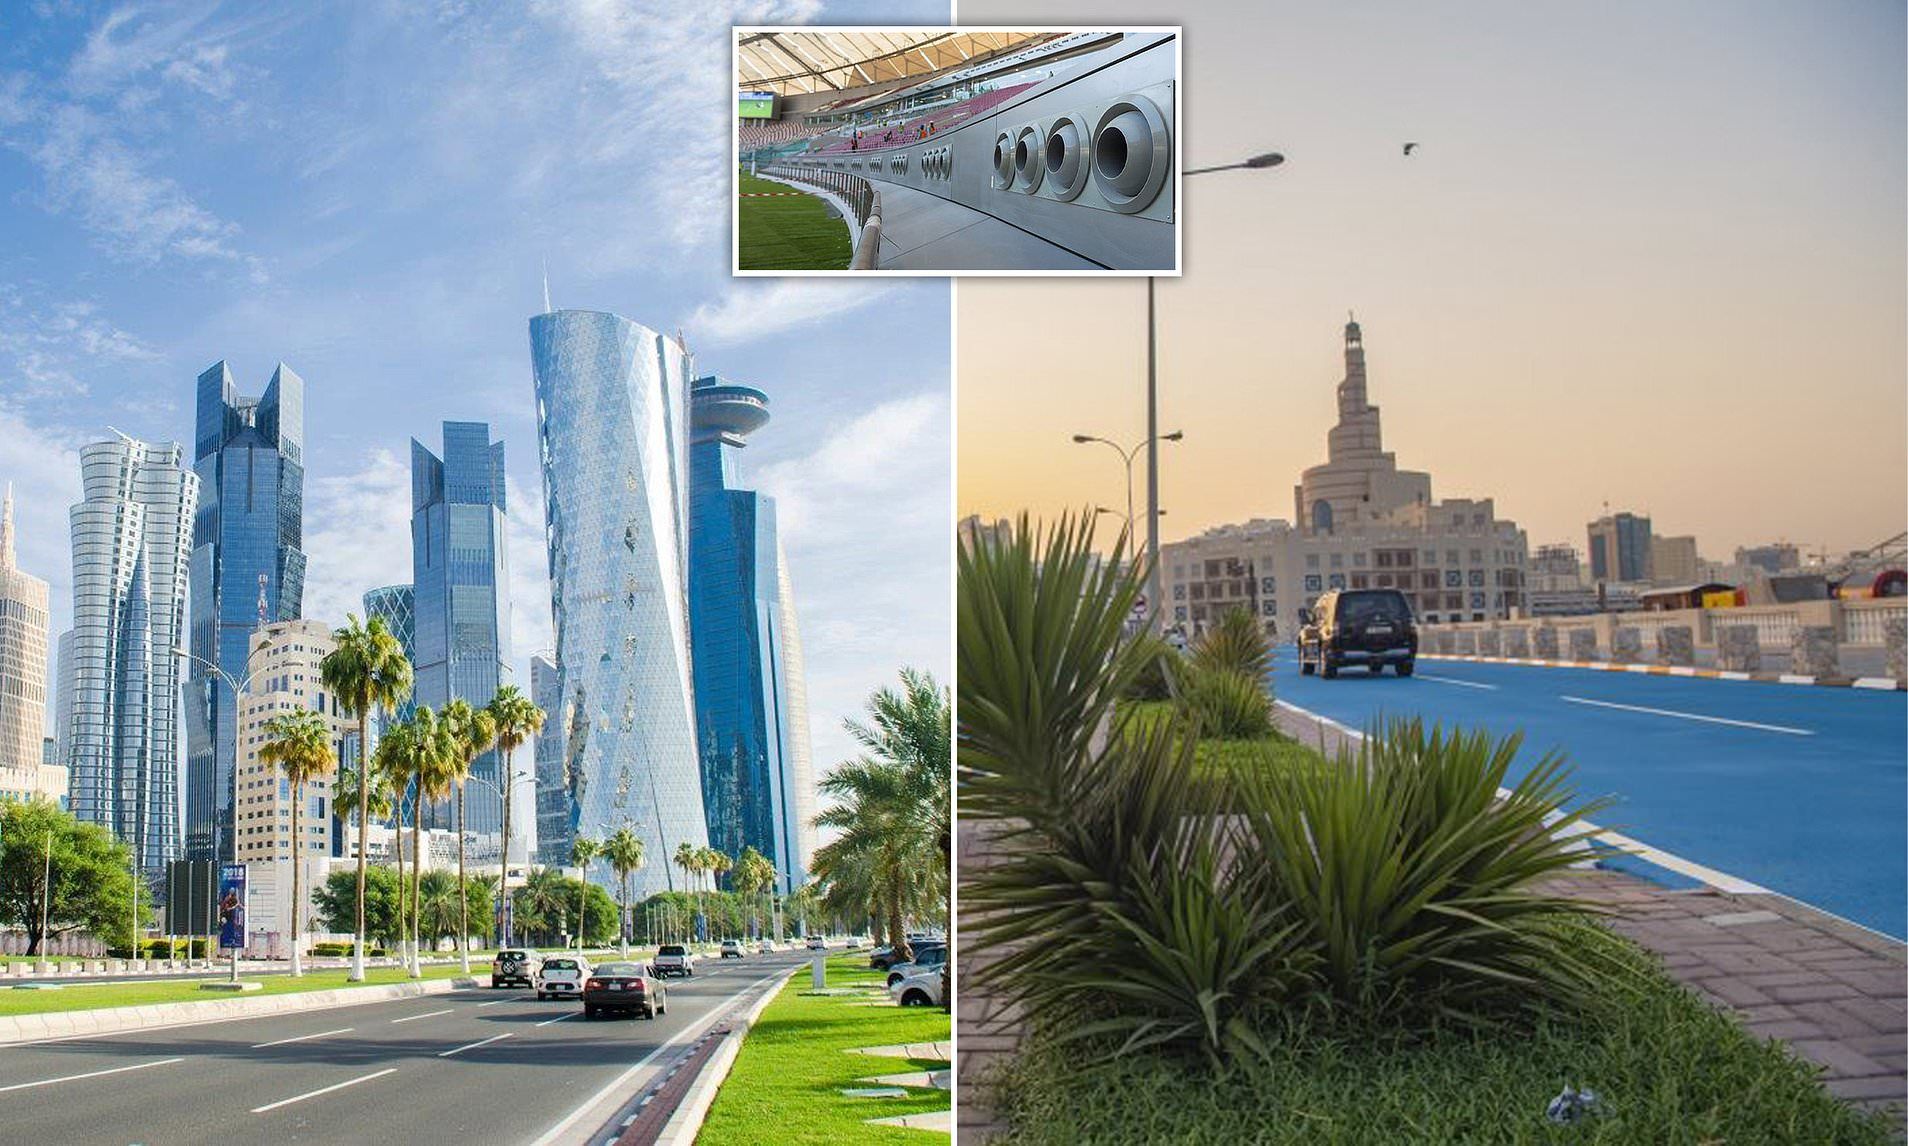 Qatar Is Now Air-Conditioning Its Outdoors Because Of The Heat